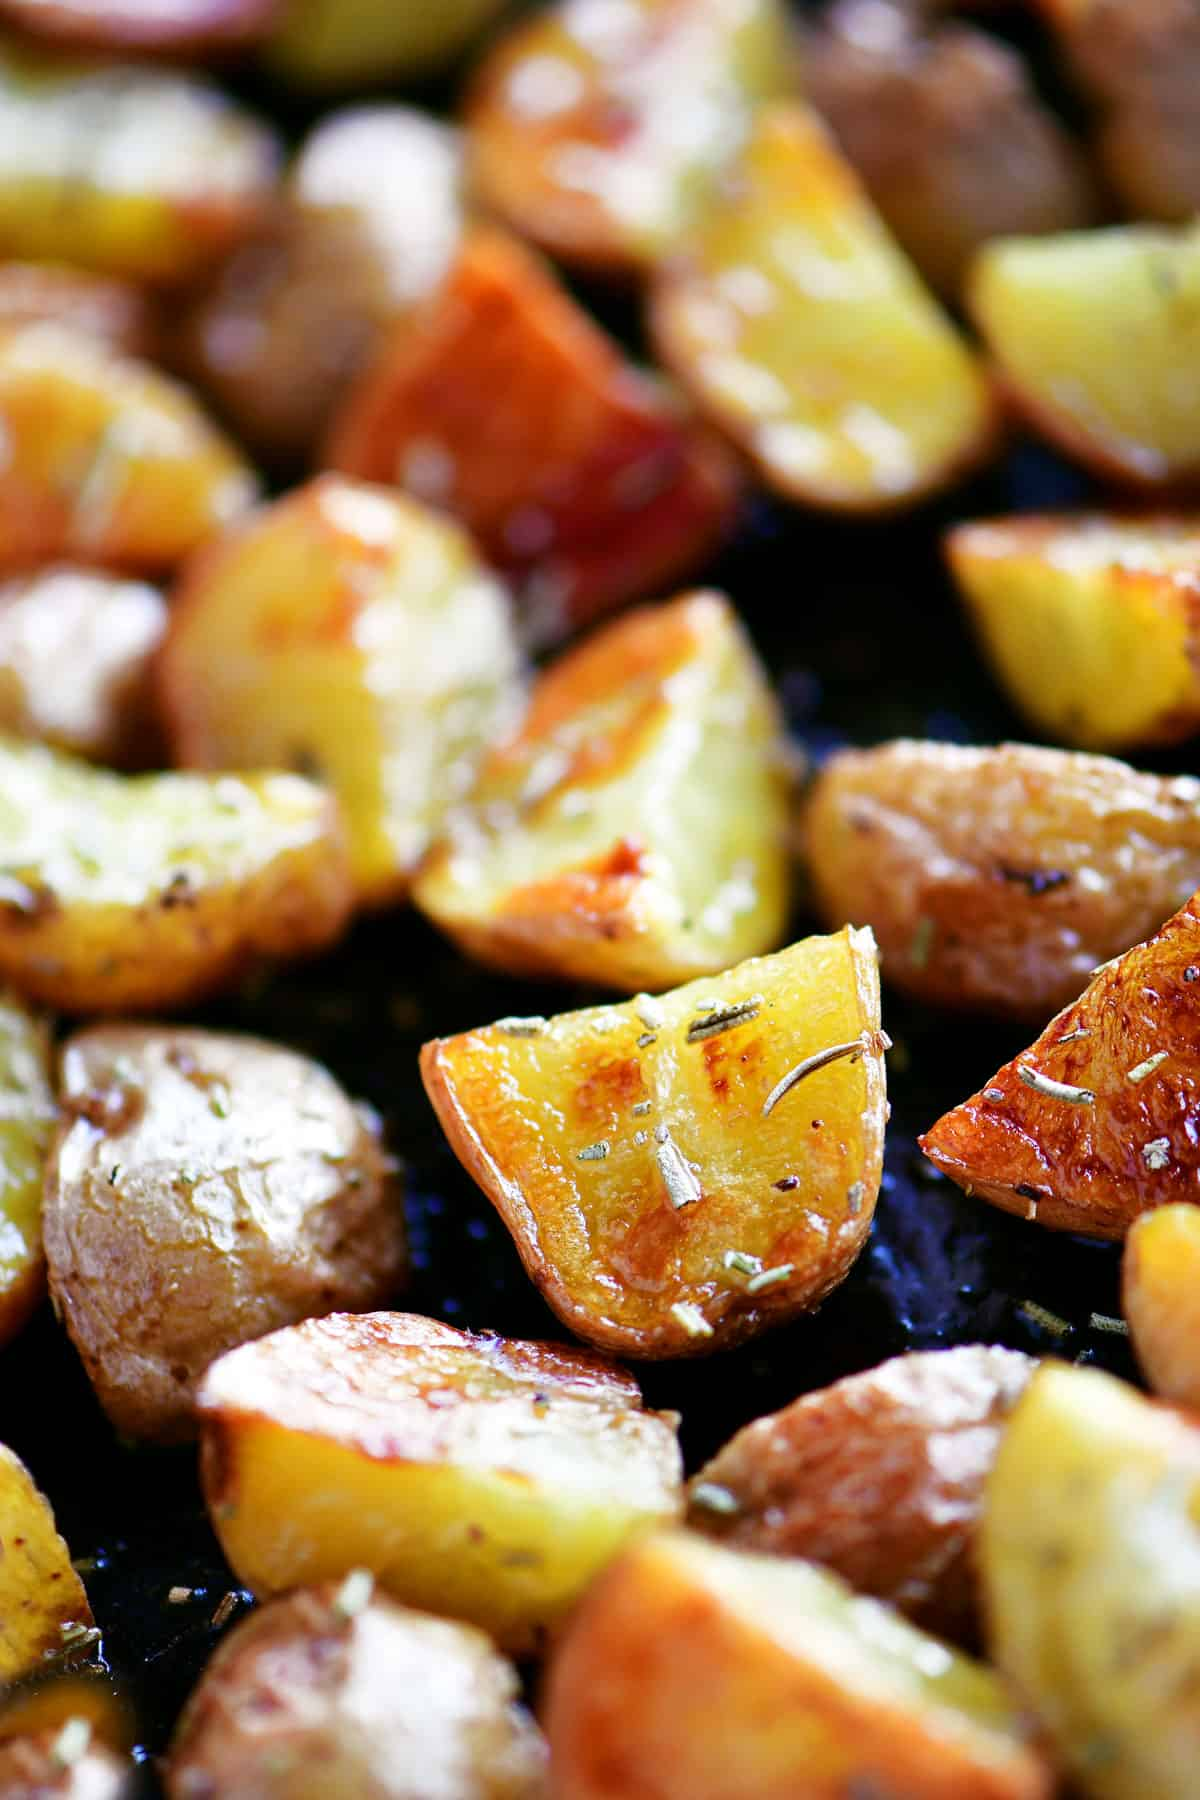 oven roasted potatoes with rosemary